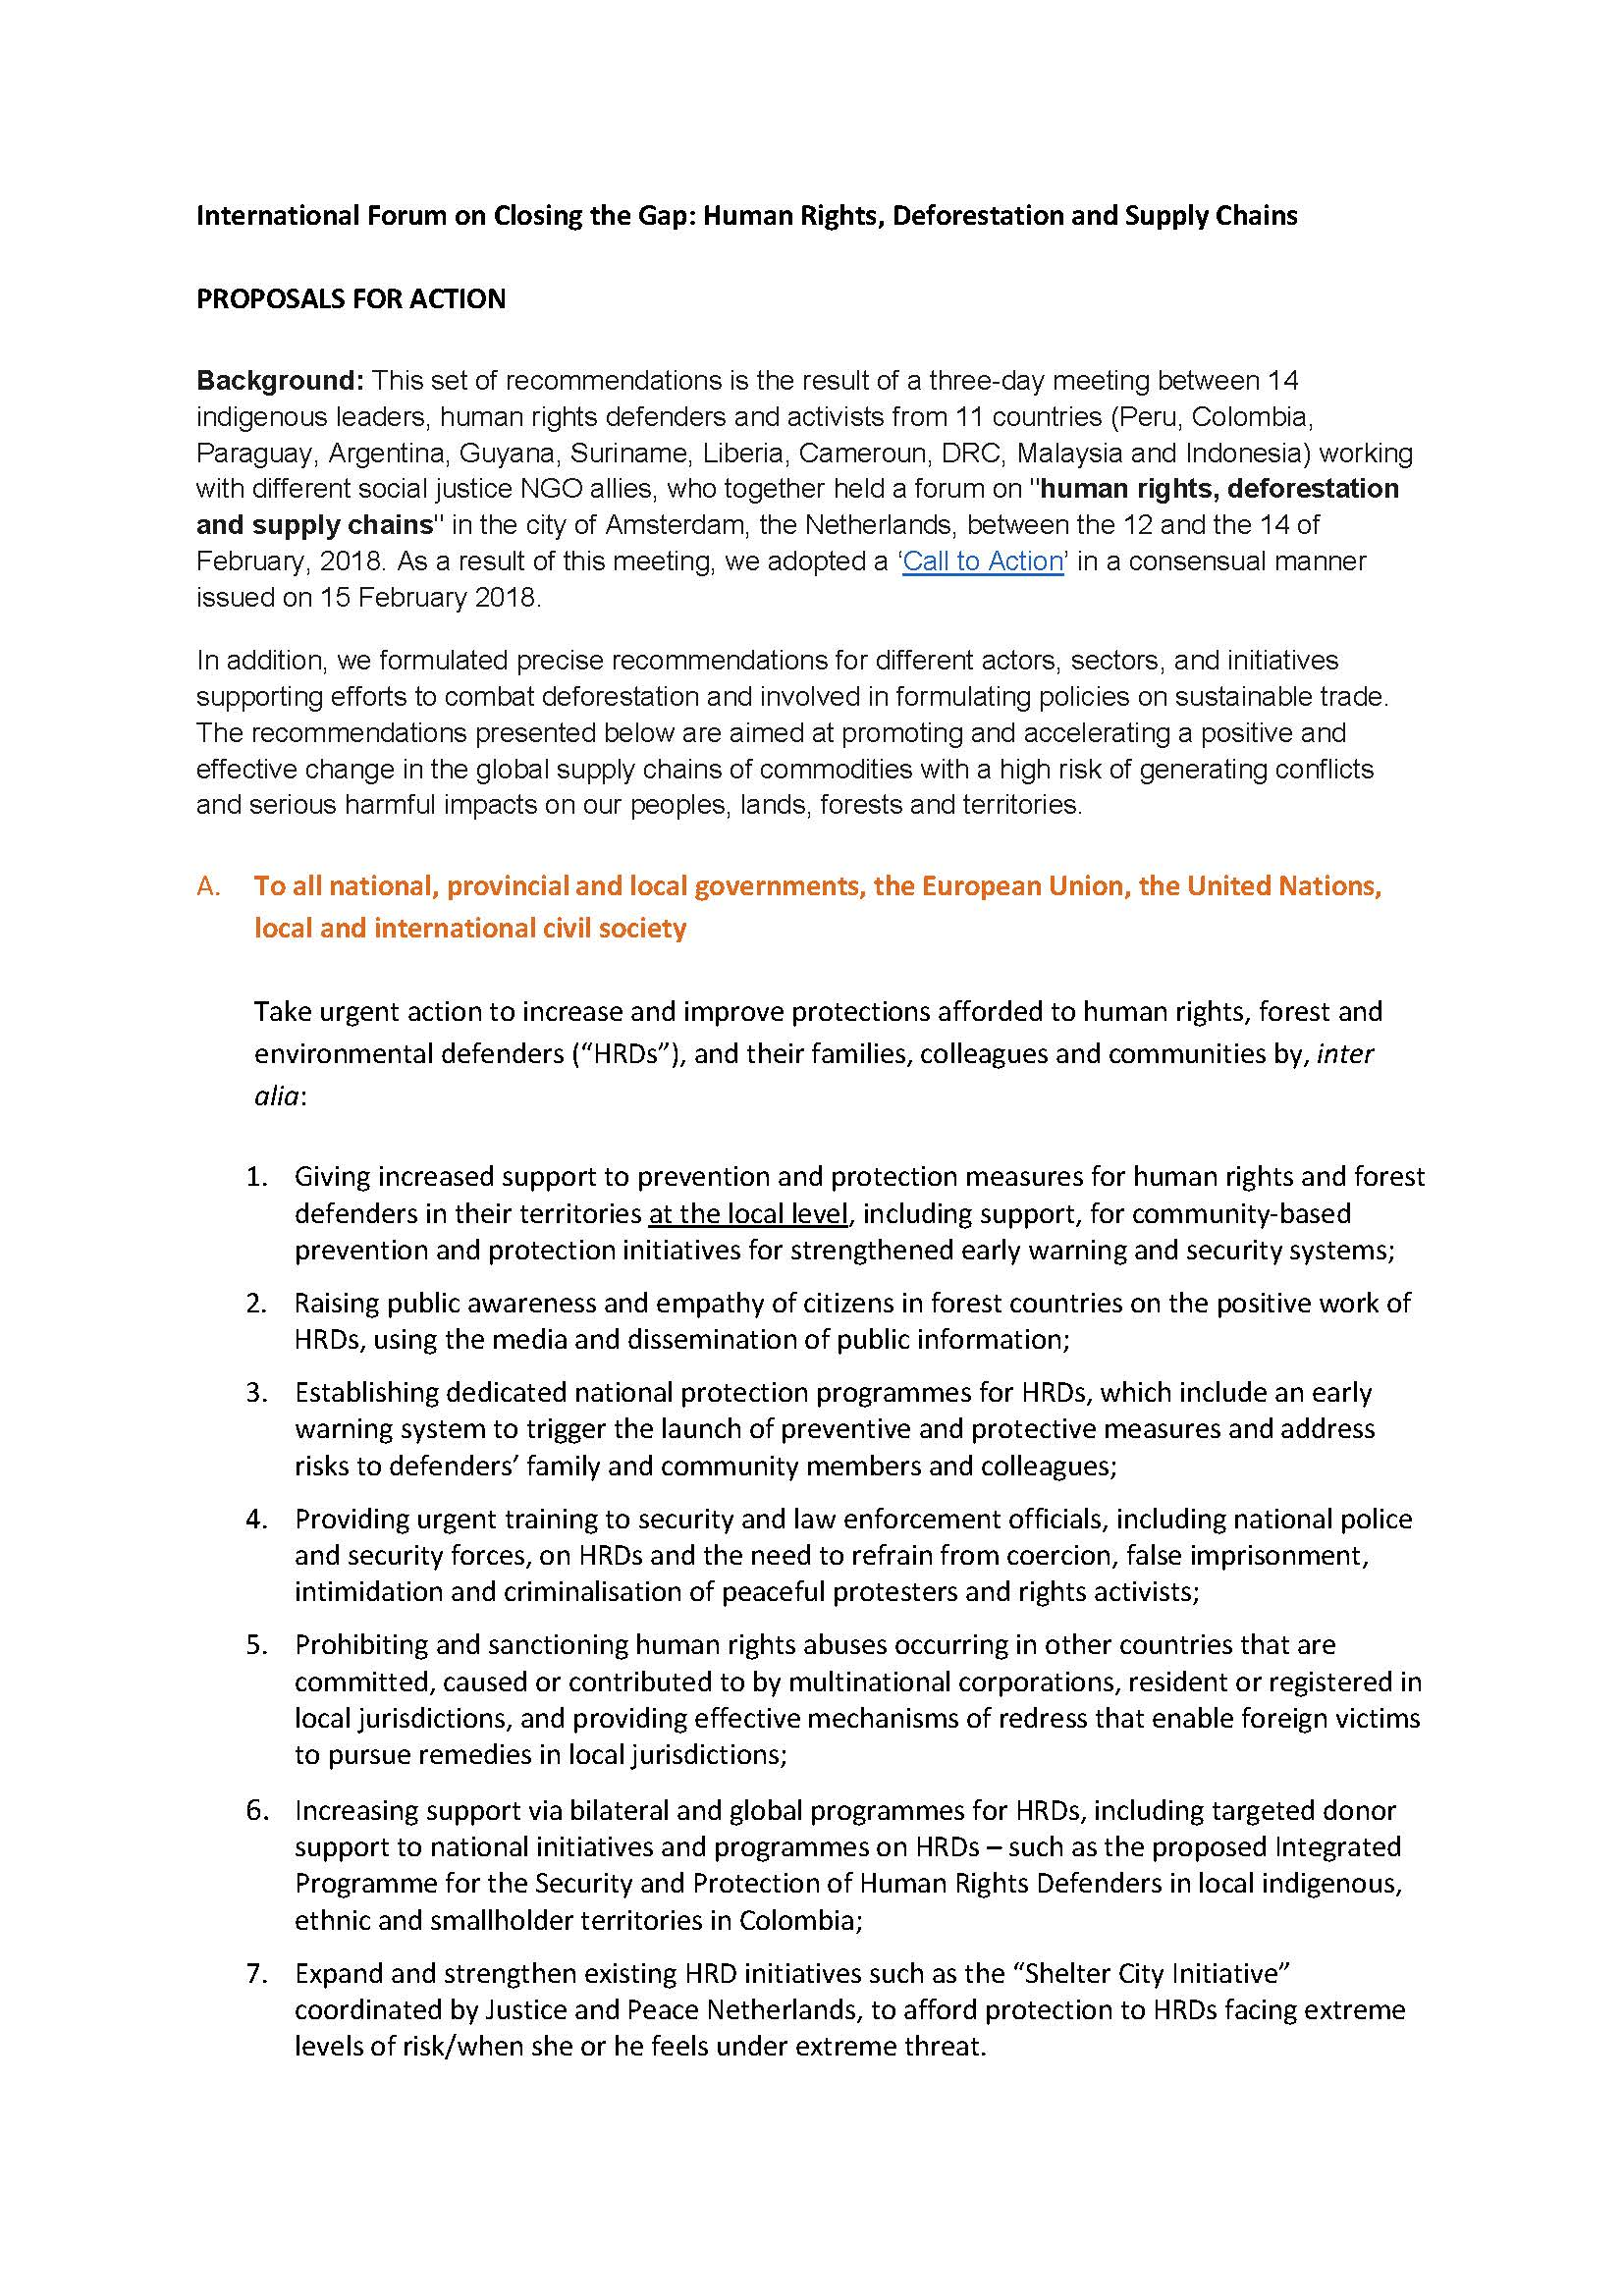 Closing the Gap - Proposals for Action_Page_1